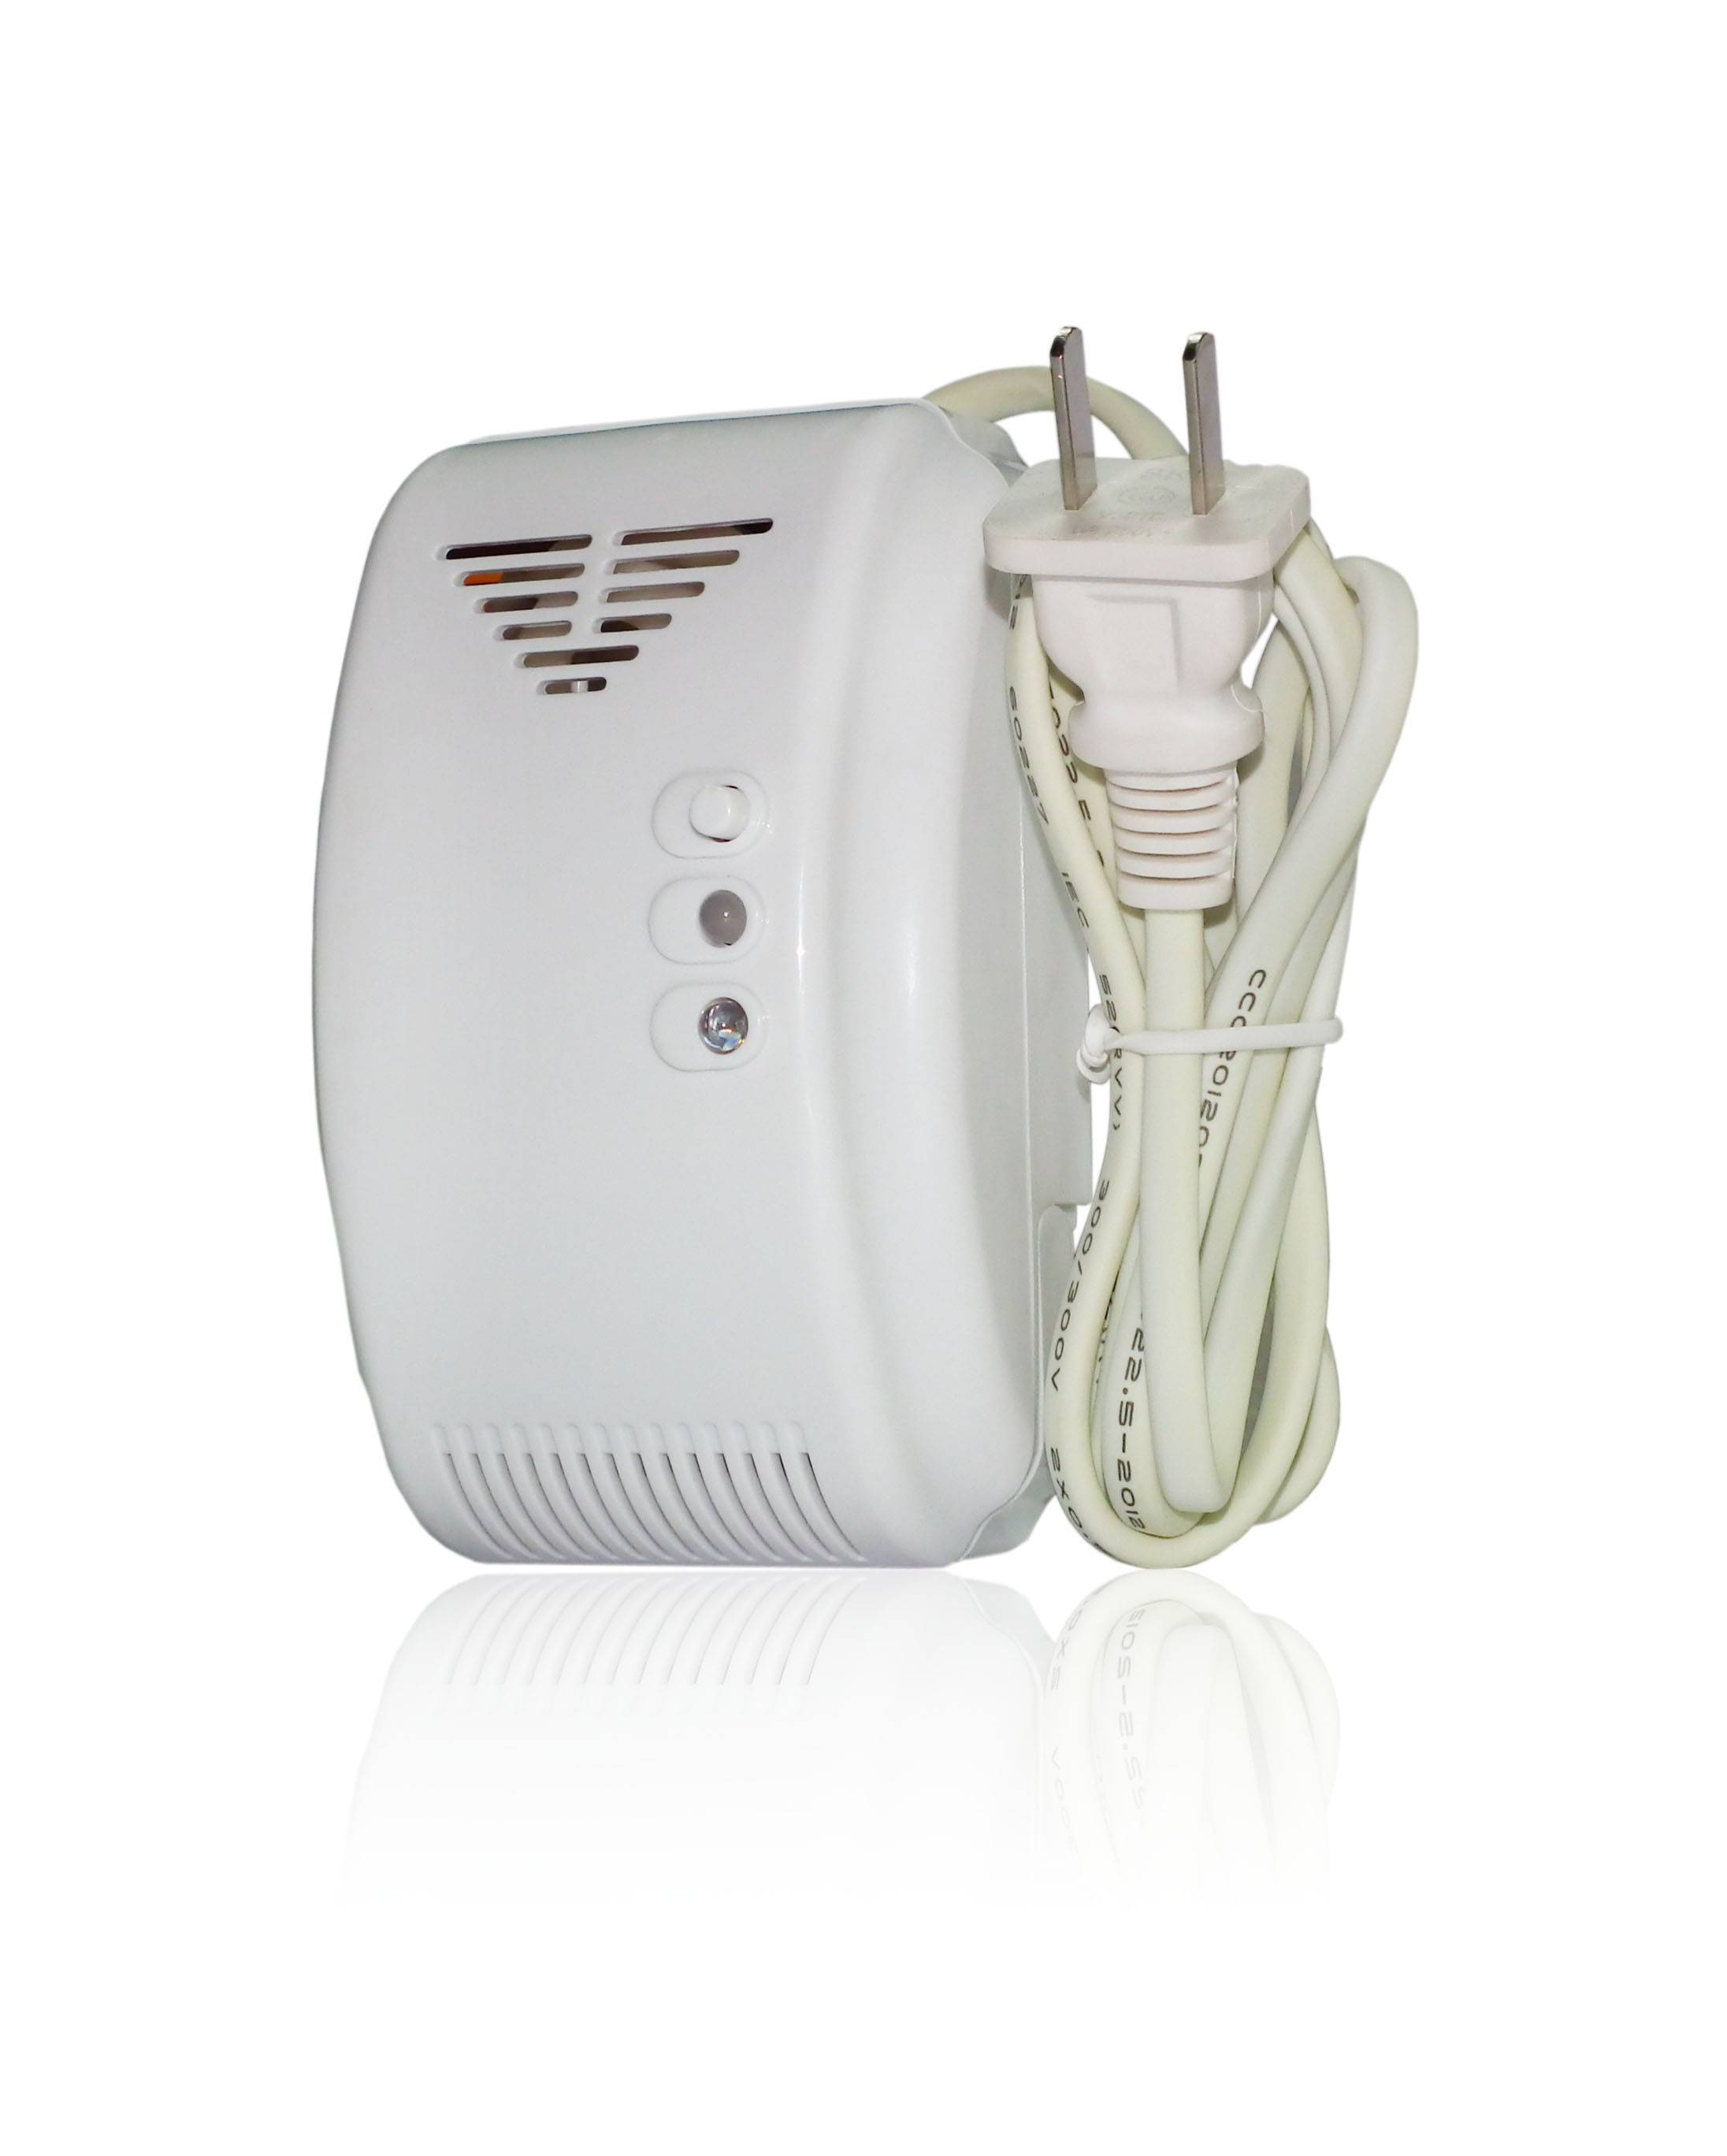 Wireless Gas Leakage Detector With High Reliability Sensor , Fire And Gas Detector